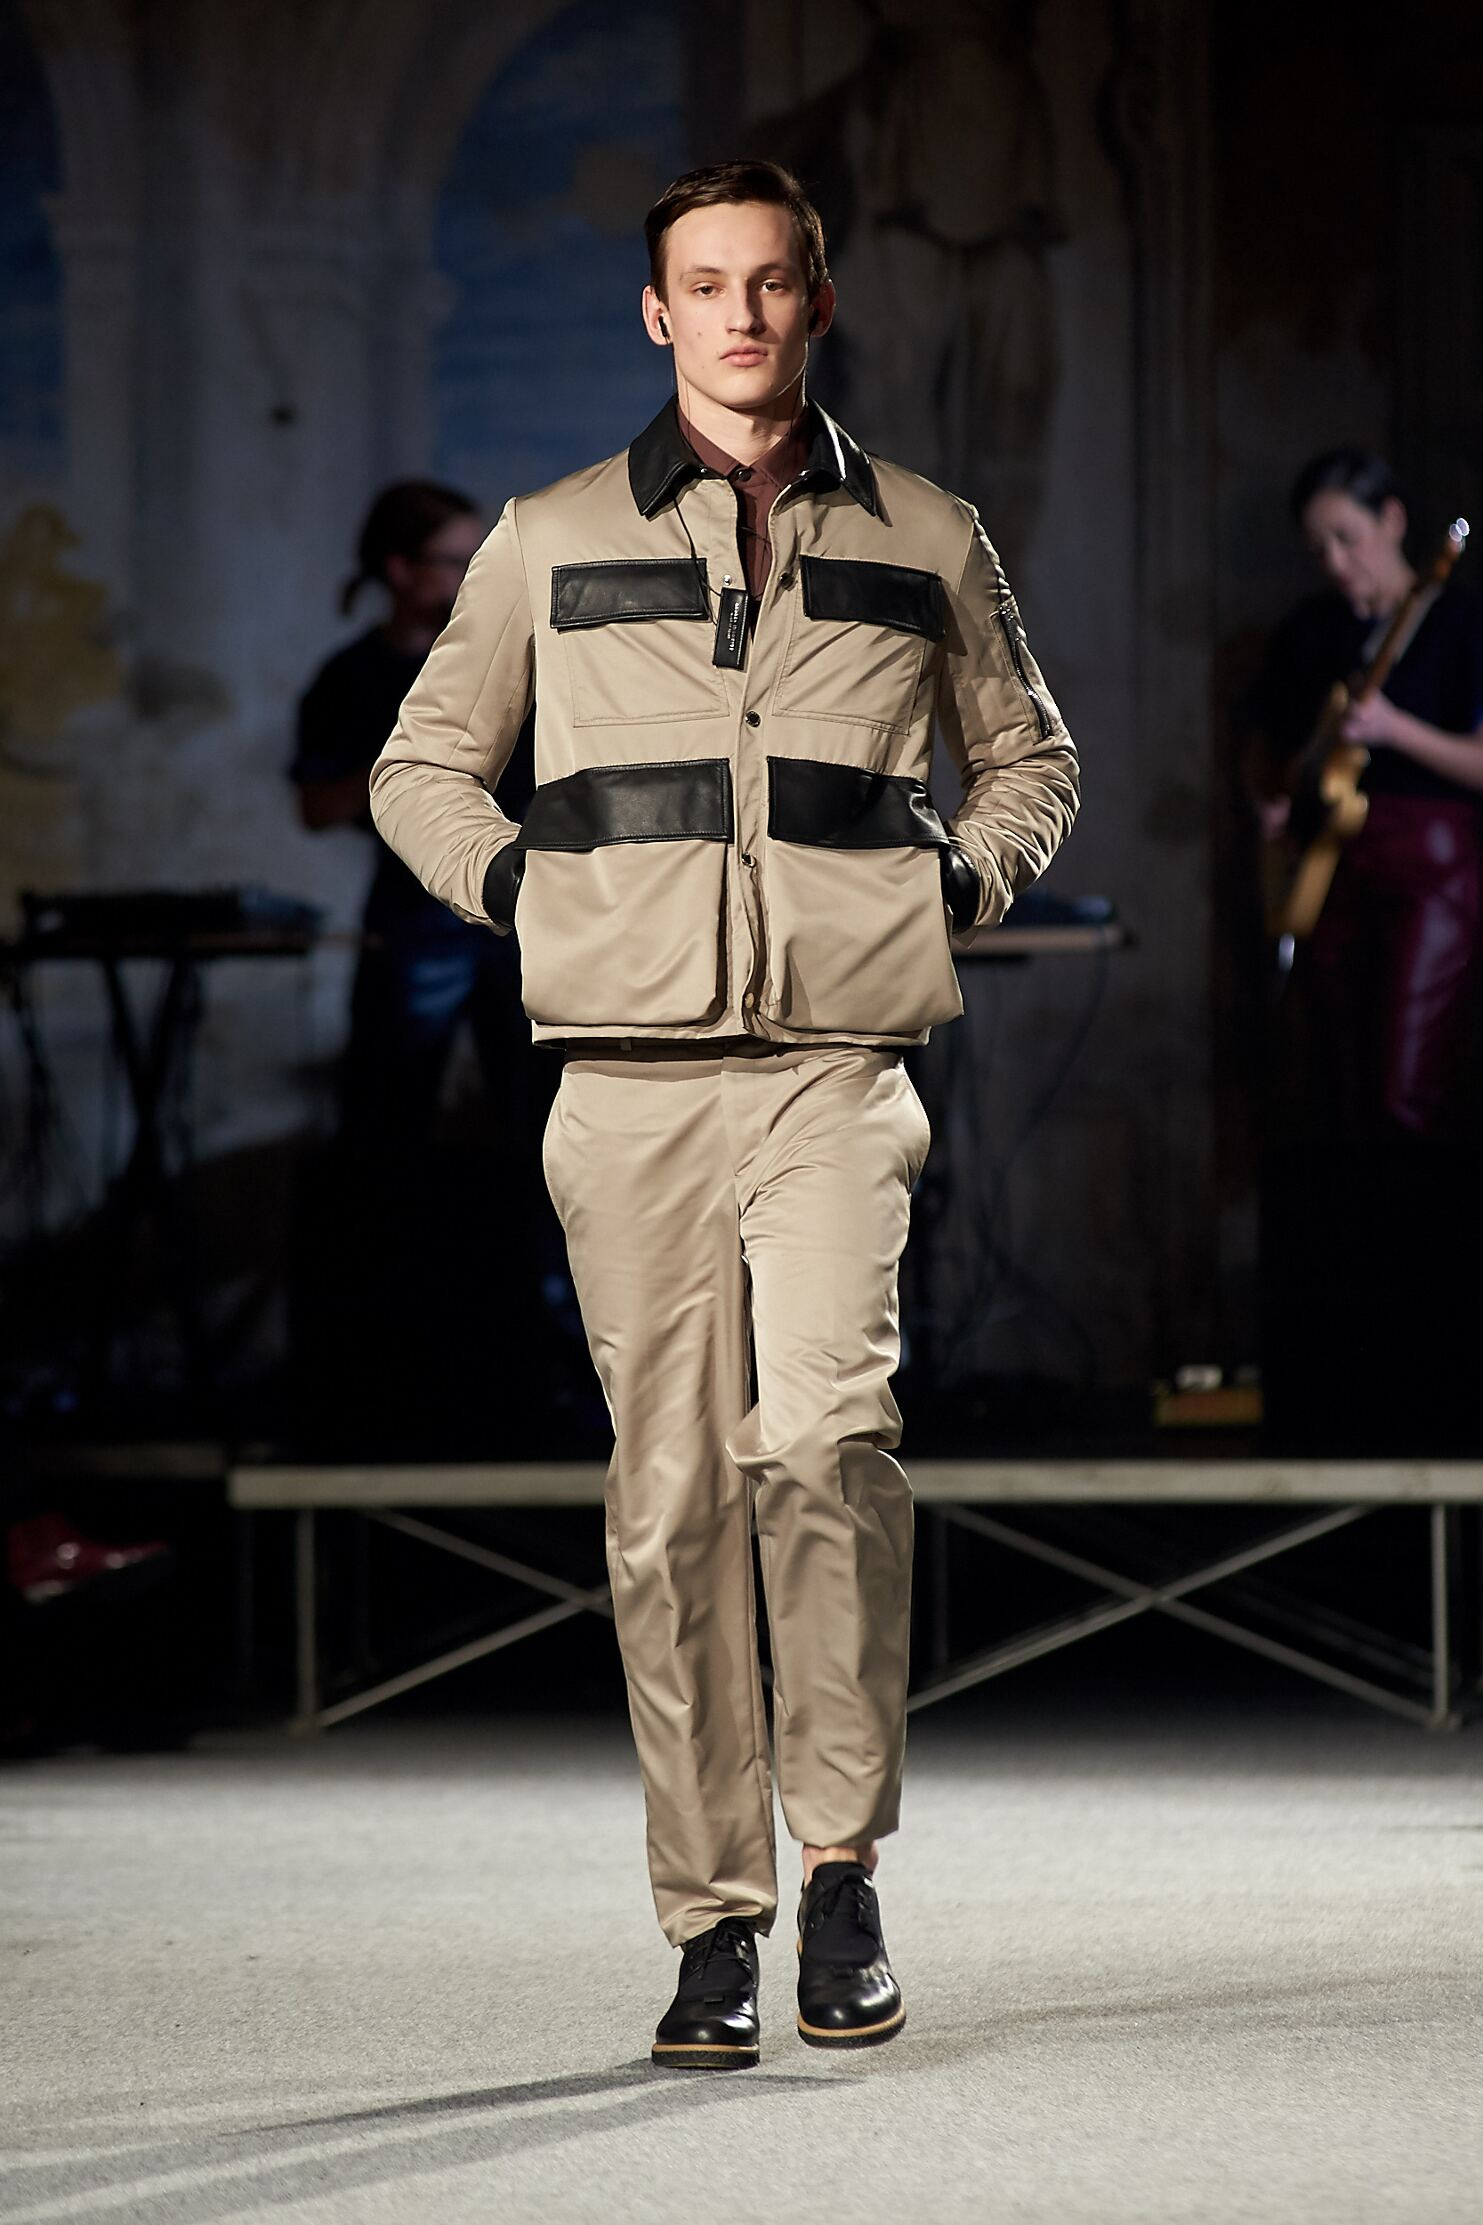 Andrea Incontri Men's Collection 2015